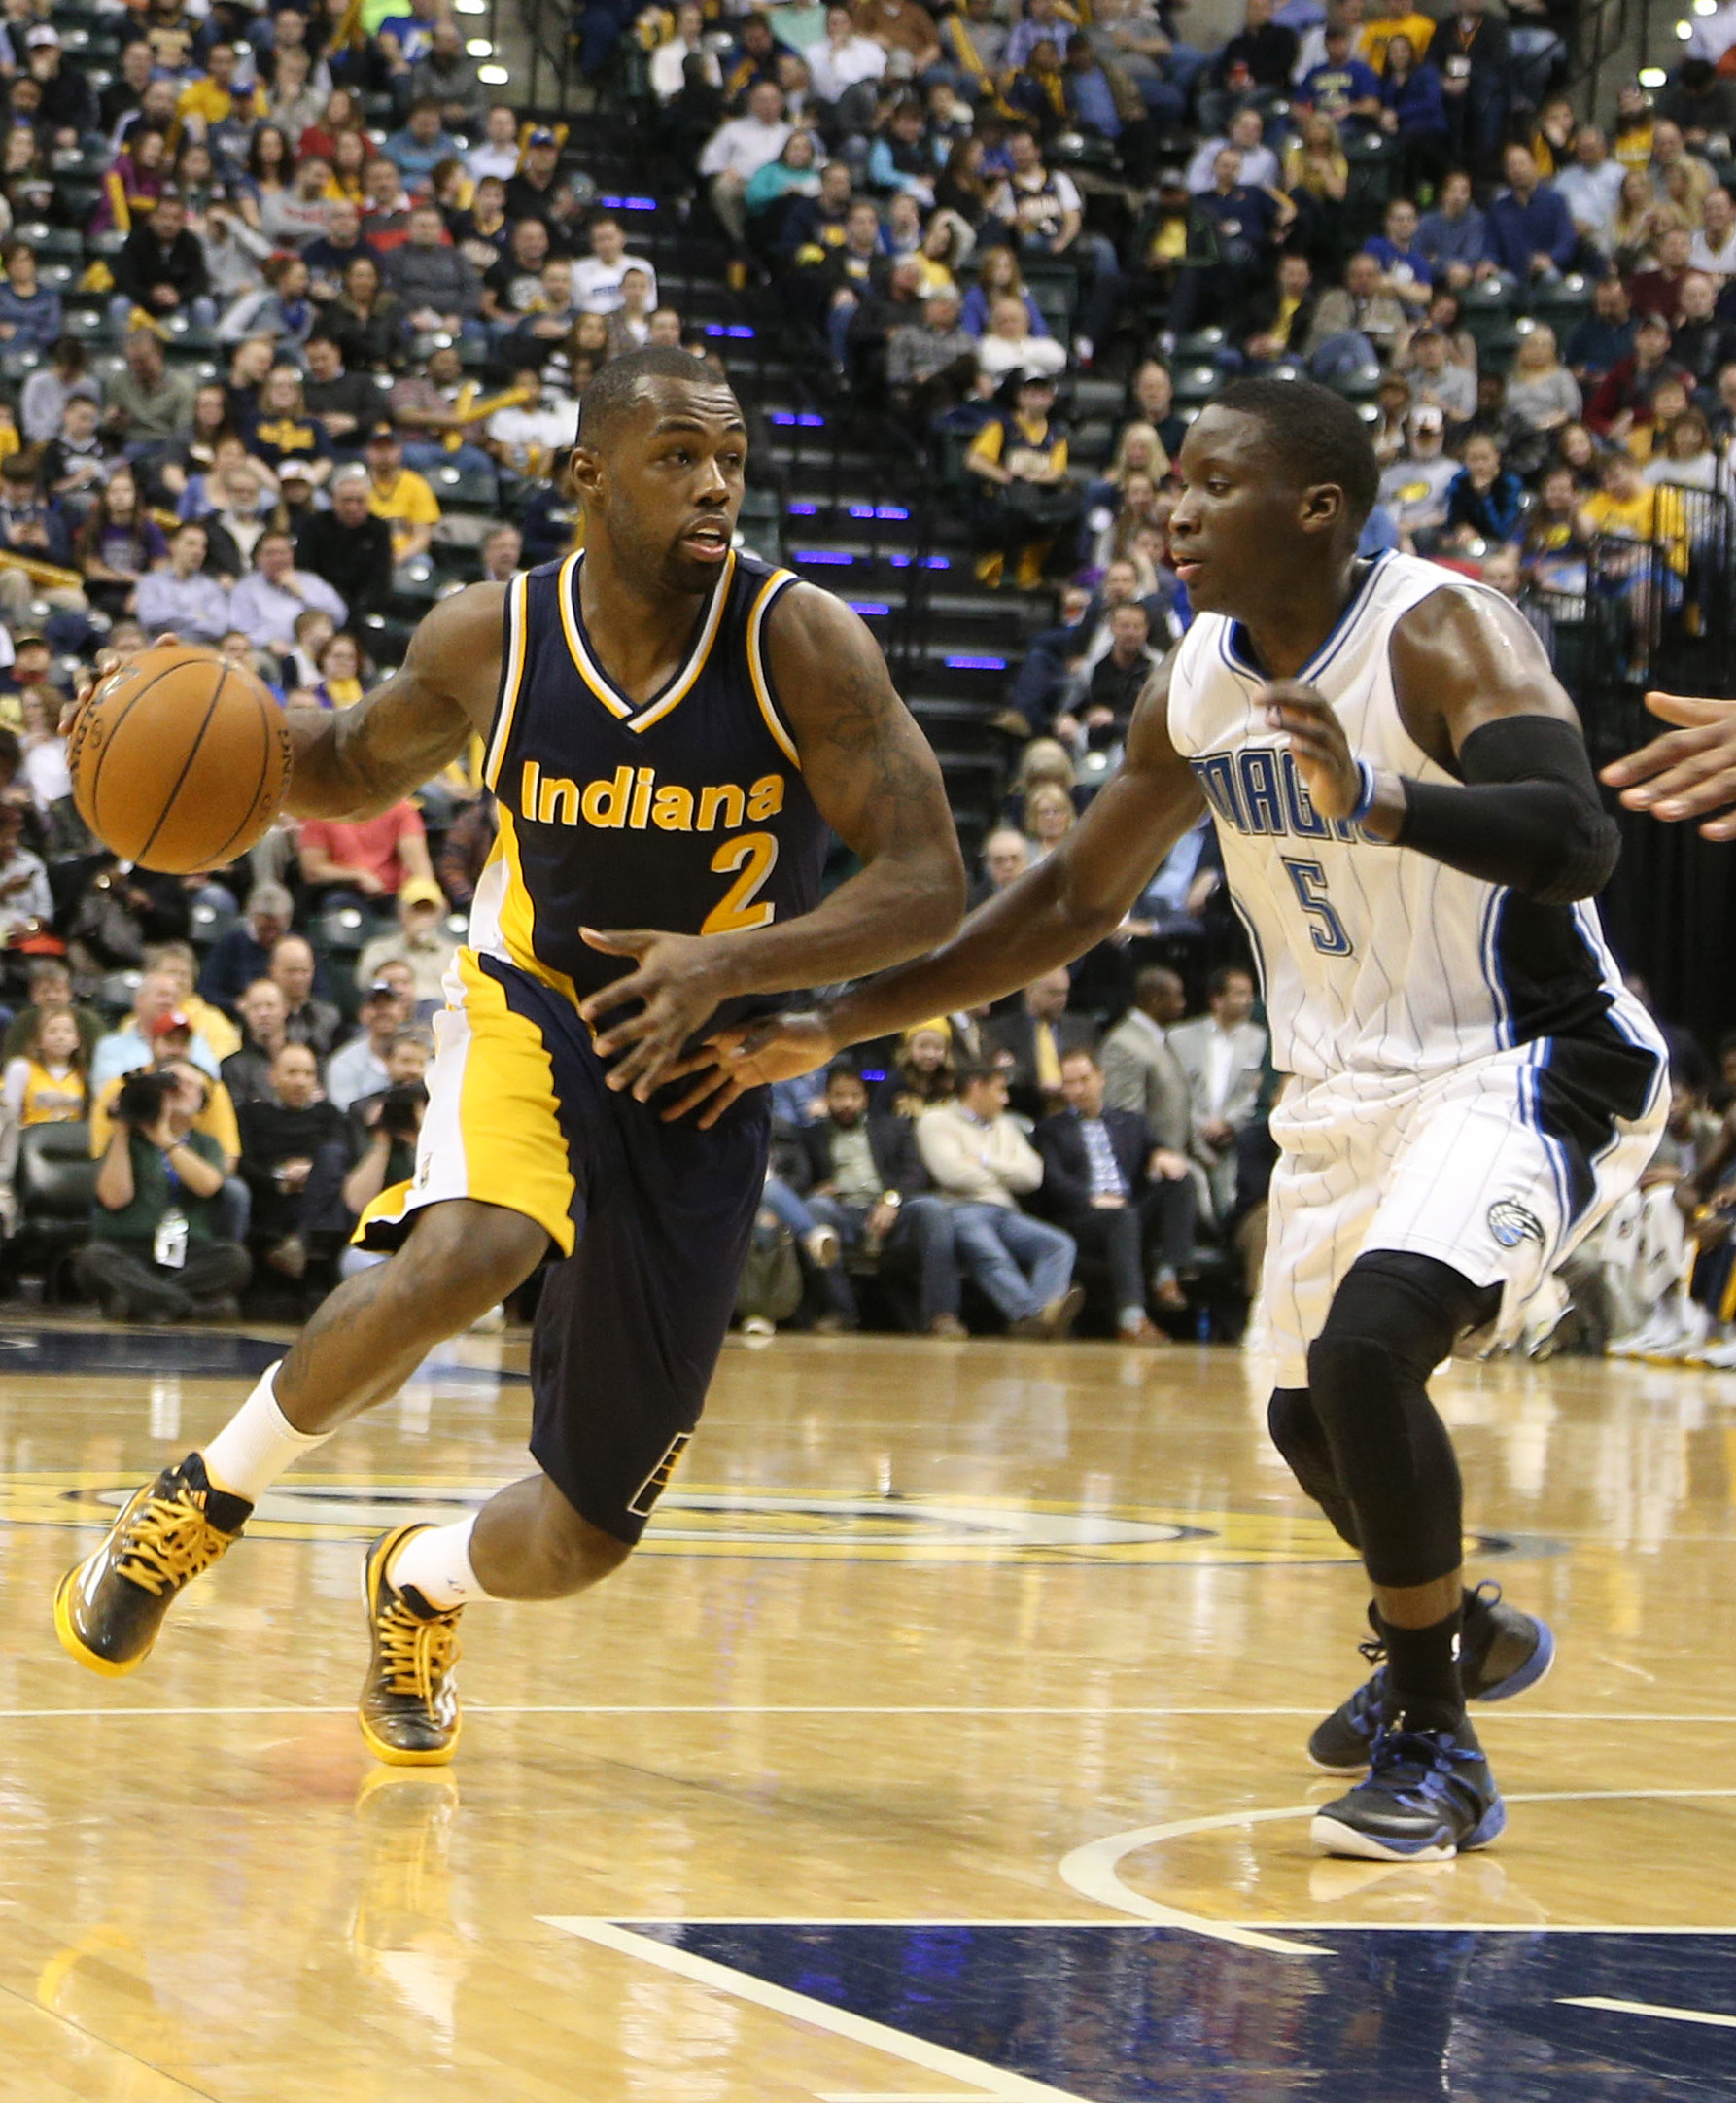 2015 NBA scores: Rodney Stuckey's 34 points leads Pacers to 6th straight win